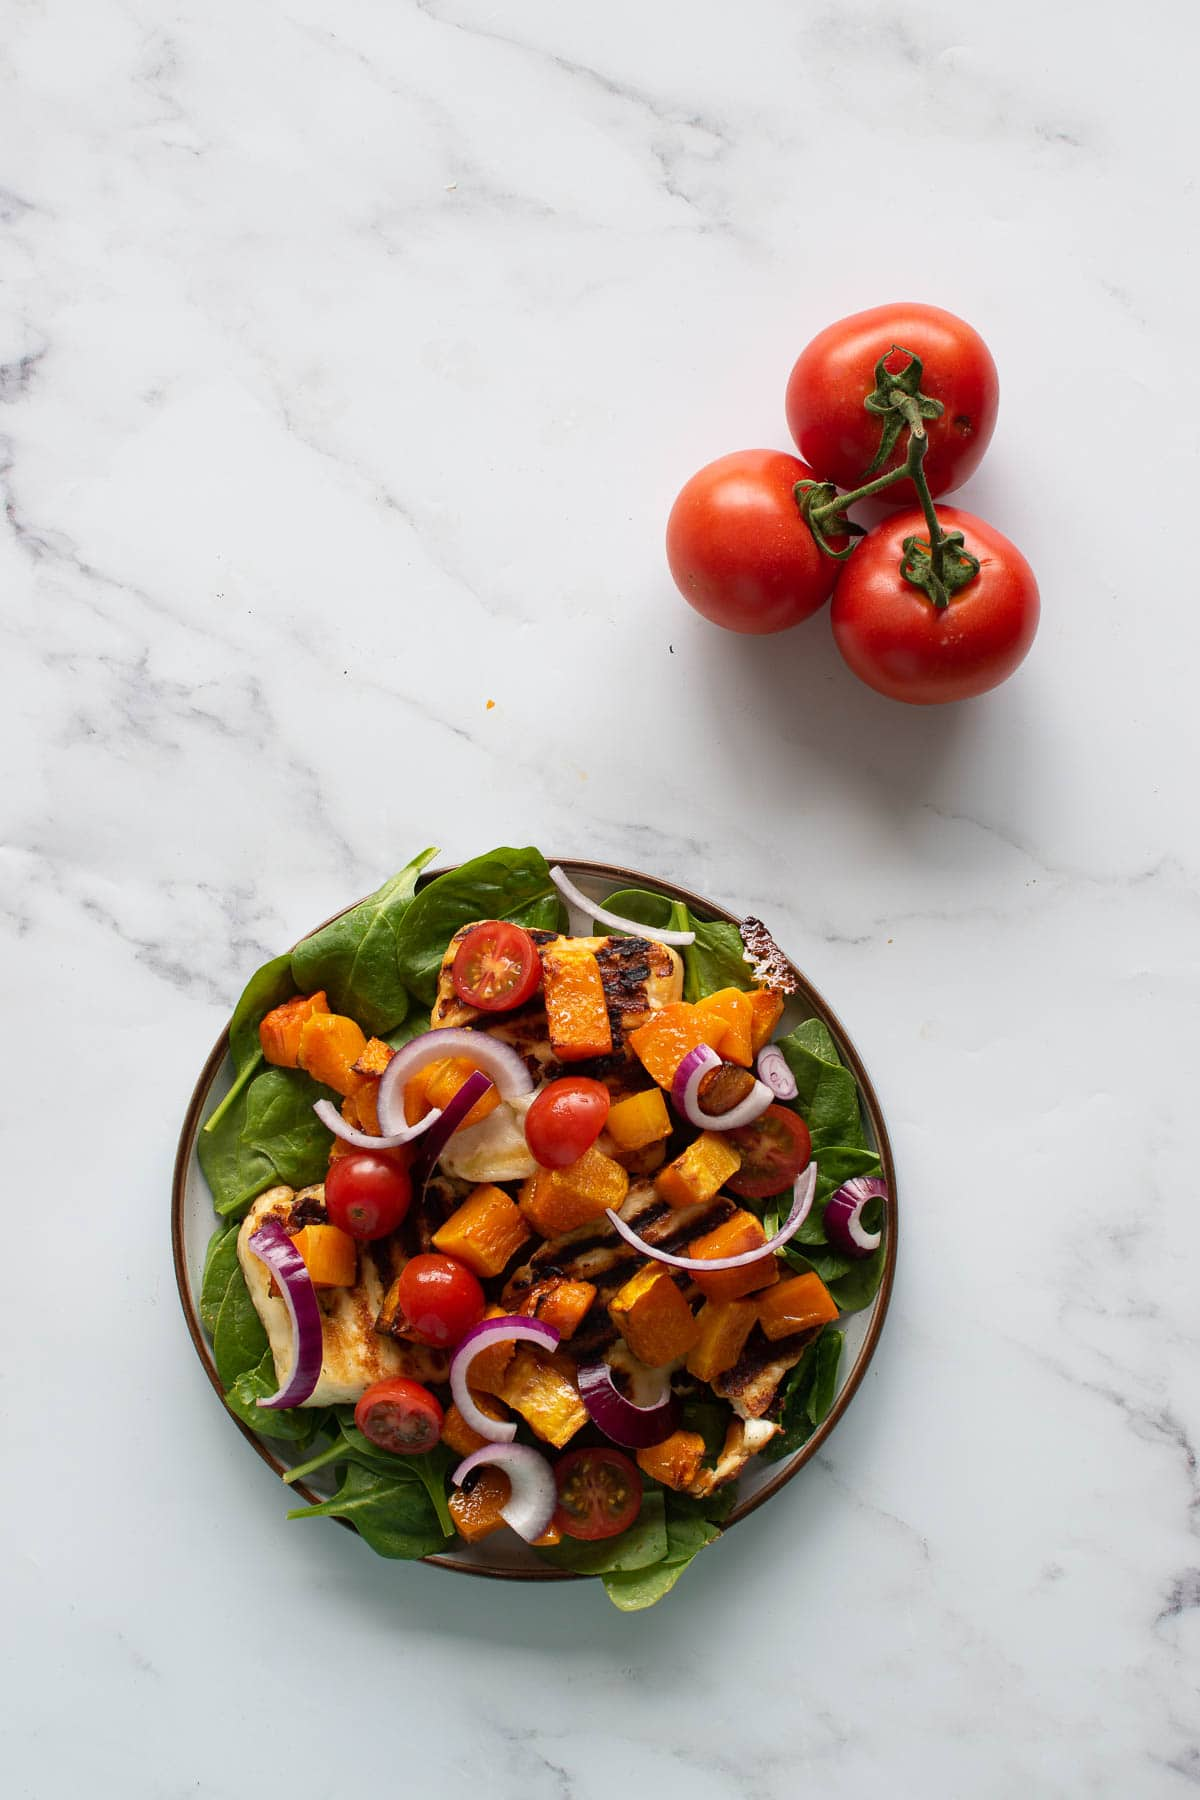 A plate of halloumi salad, with tomatoes on the side.